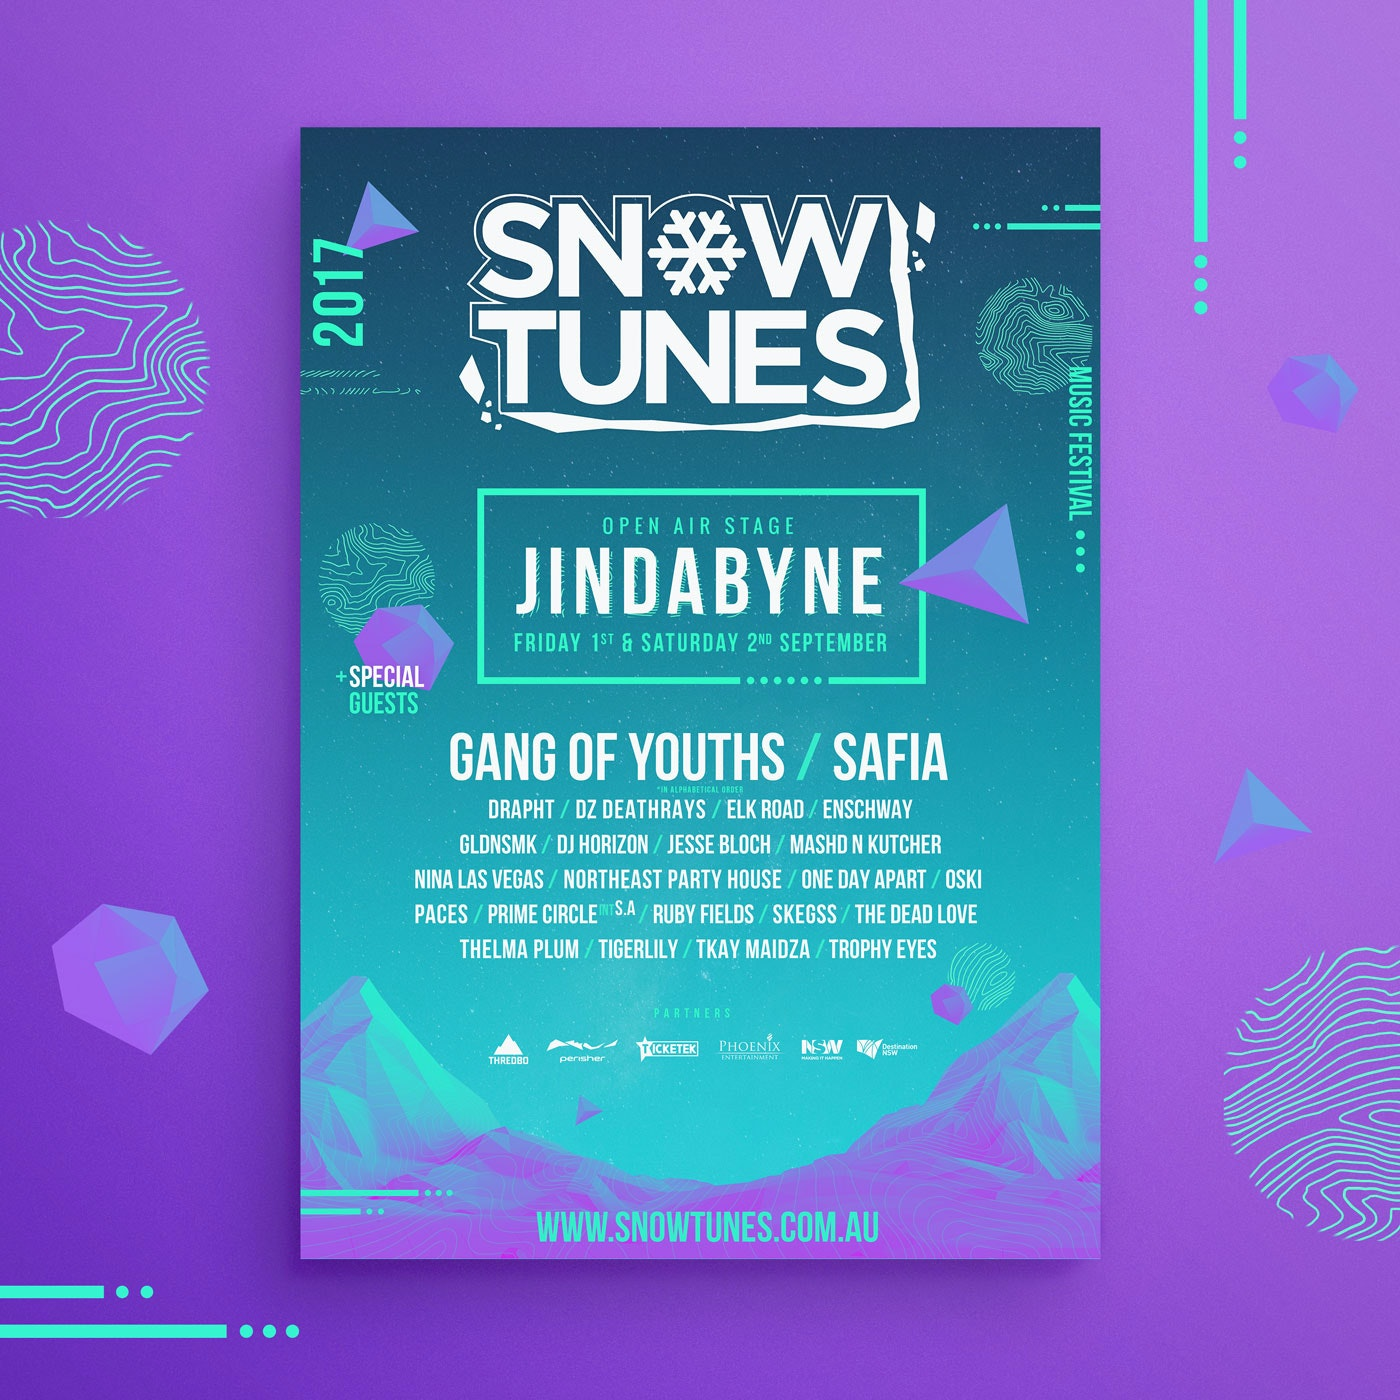 Snowtunes Music Festival in Jindabyne NSW  sweepstakes